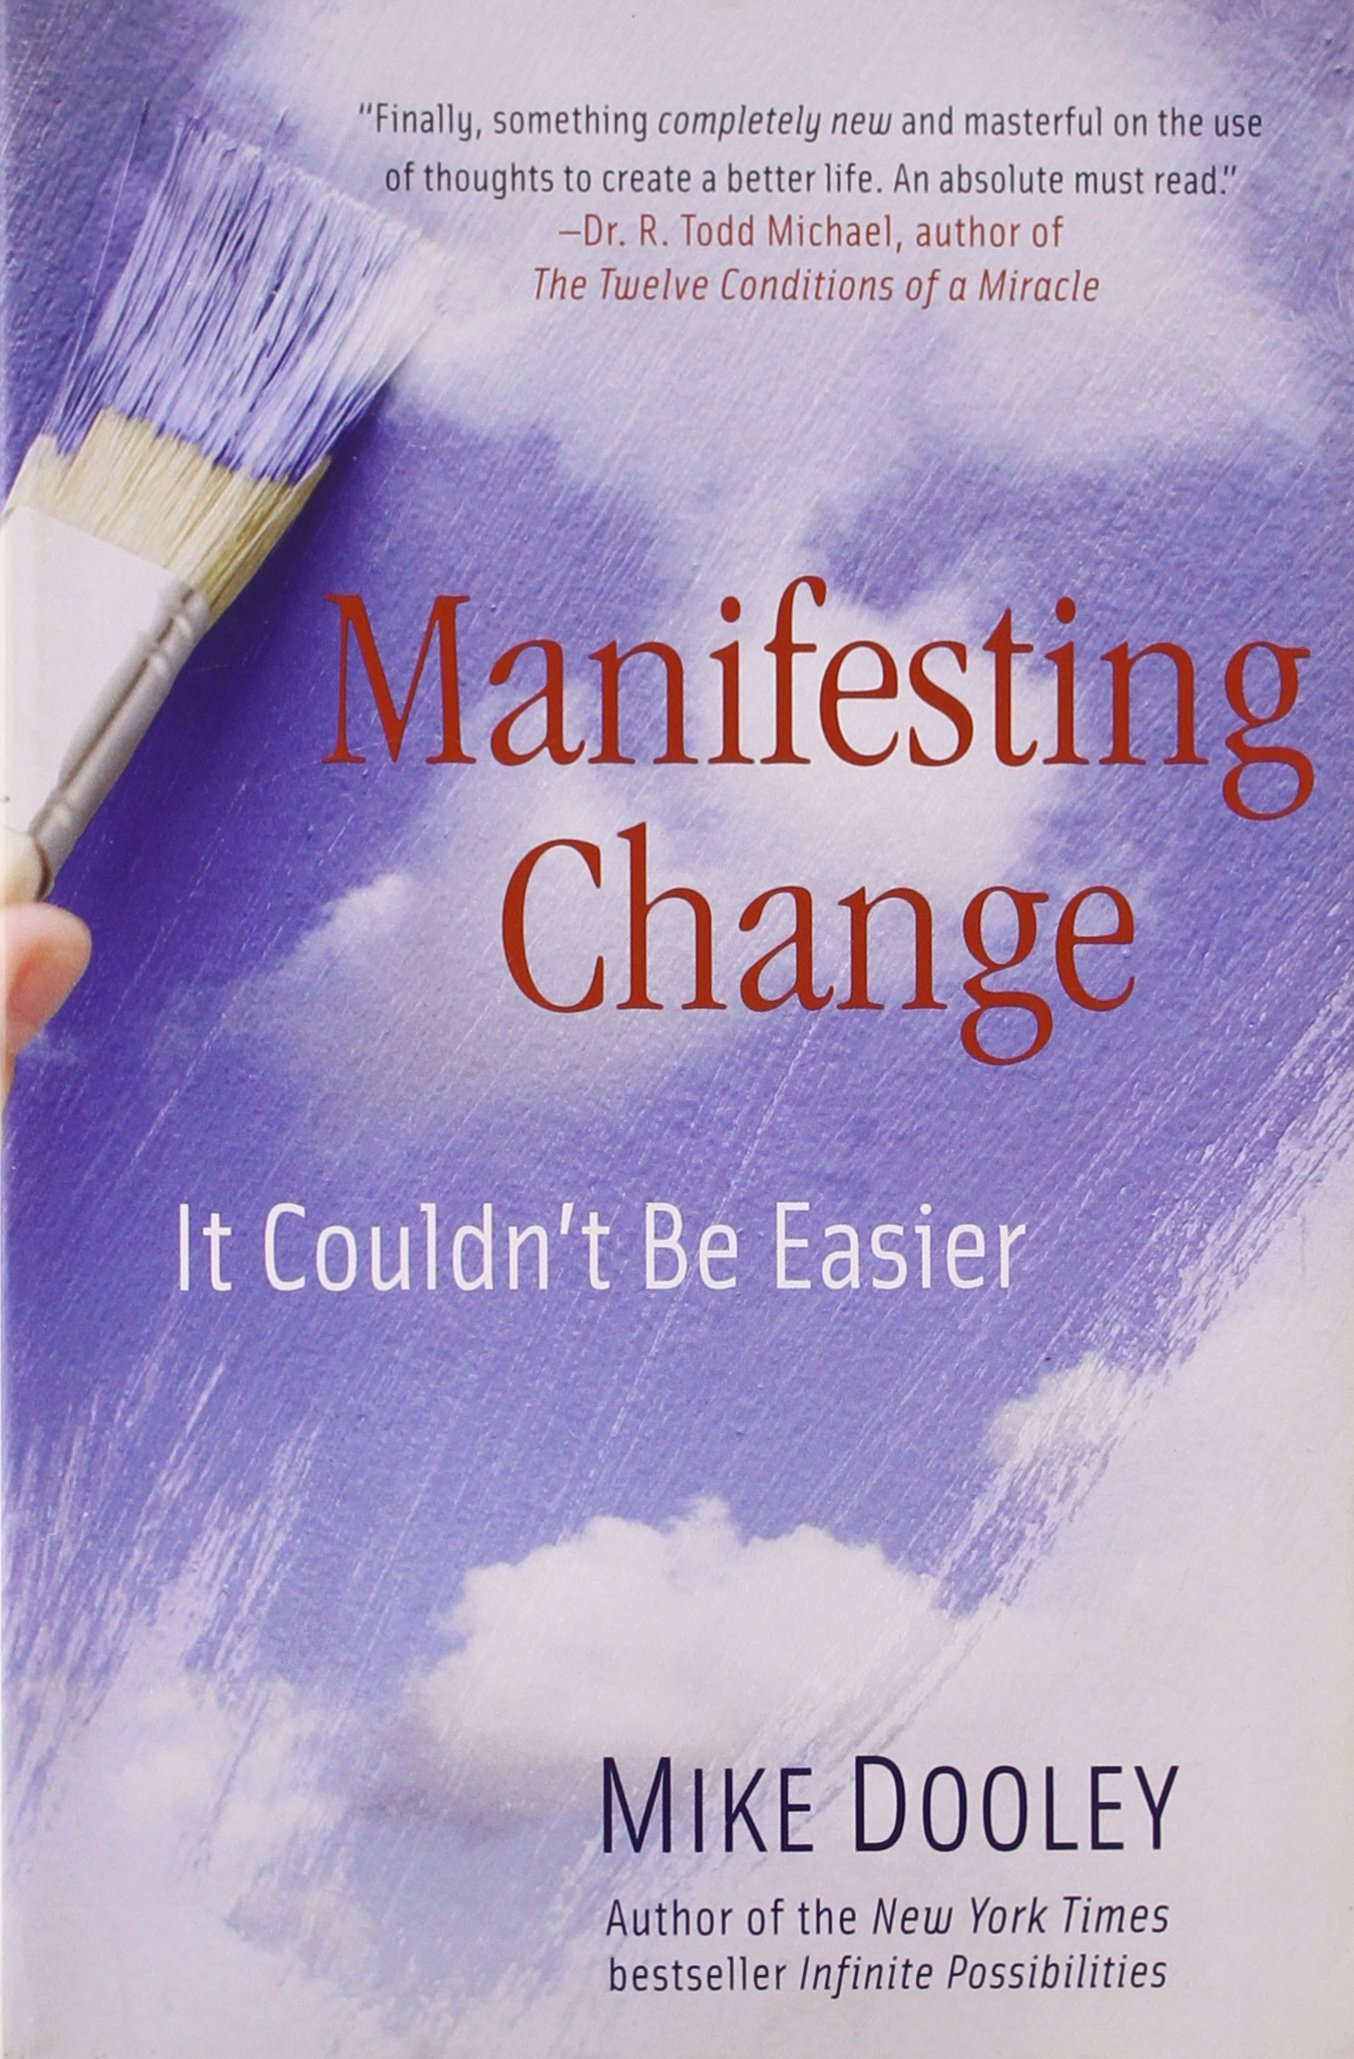 Manifesting Change Quotes Manifesting Change it